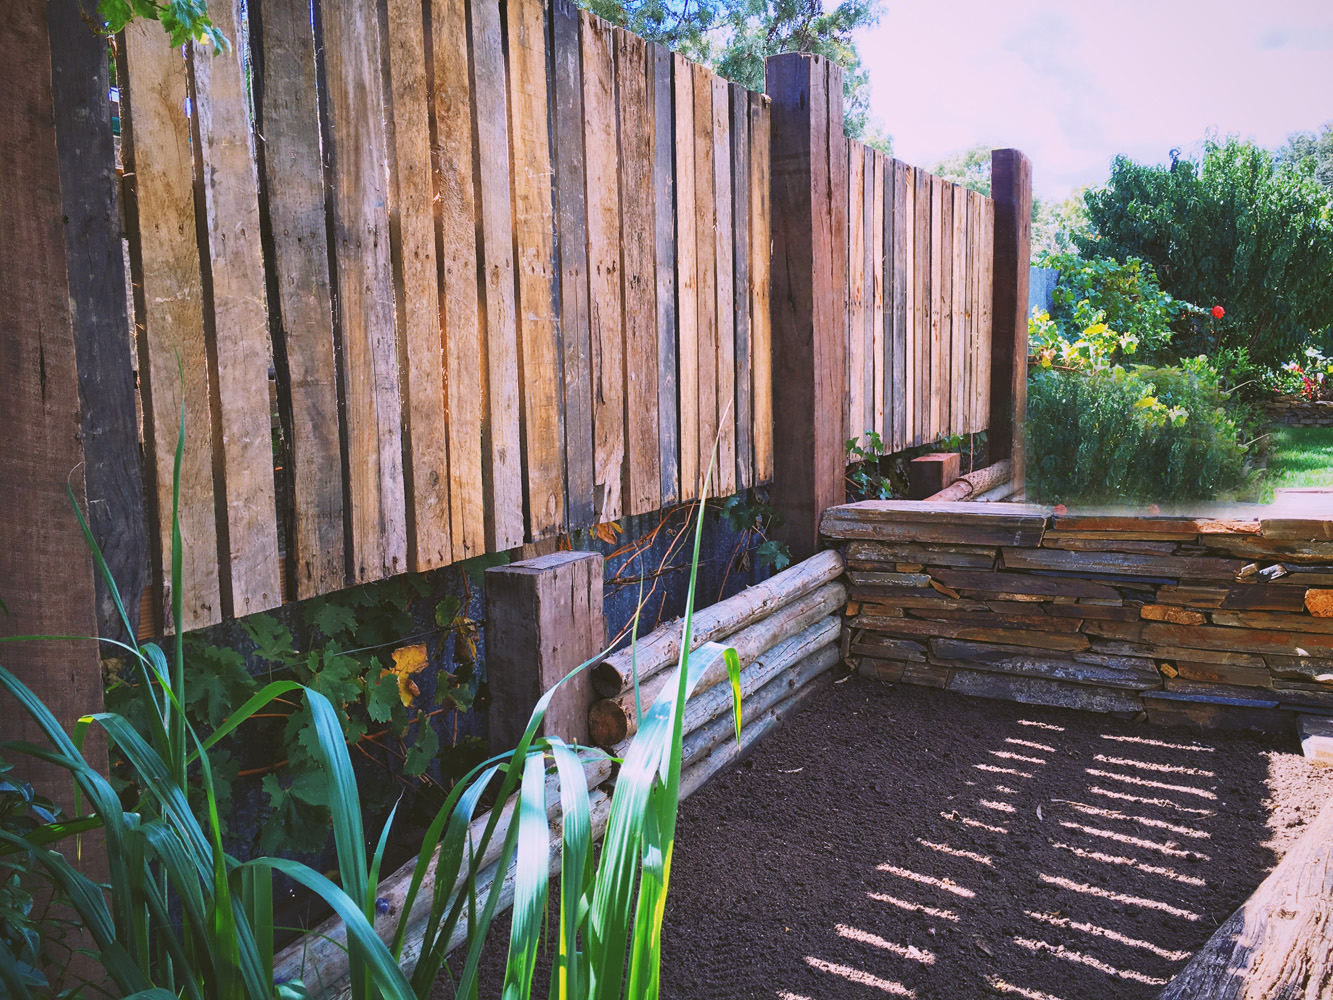 Recycled pallet fence with old railway sleepers